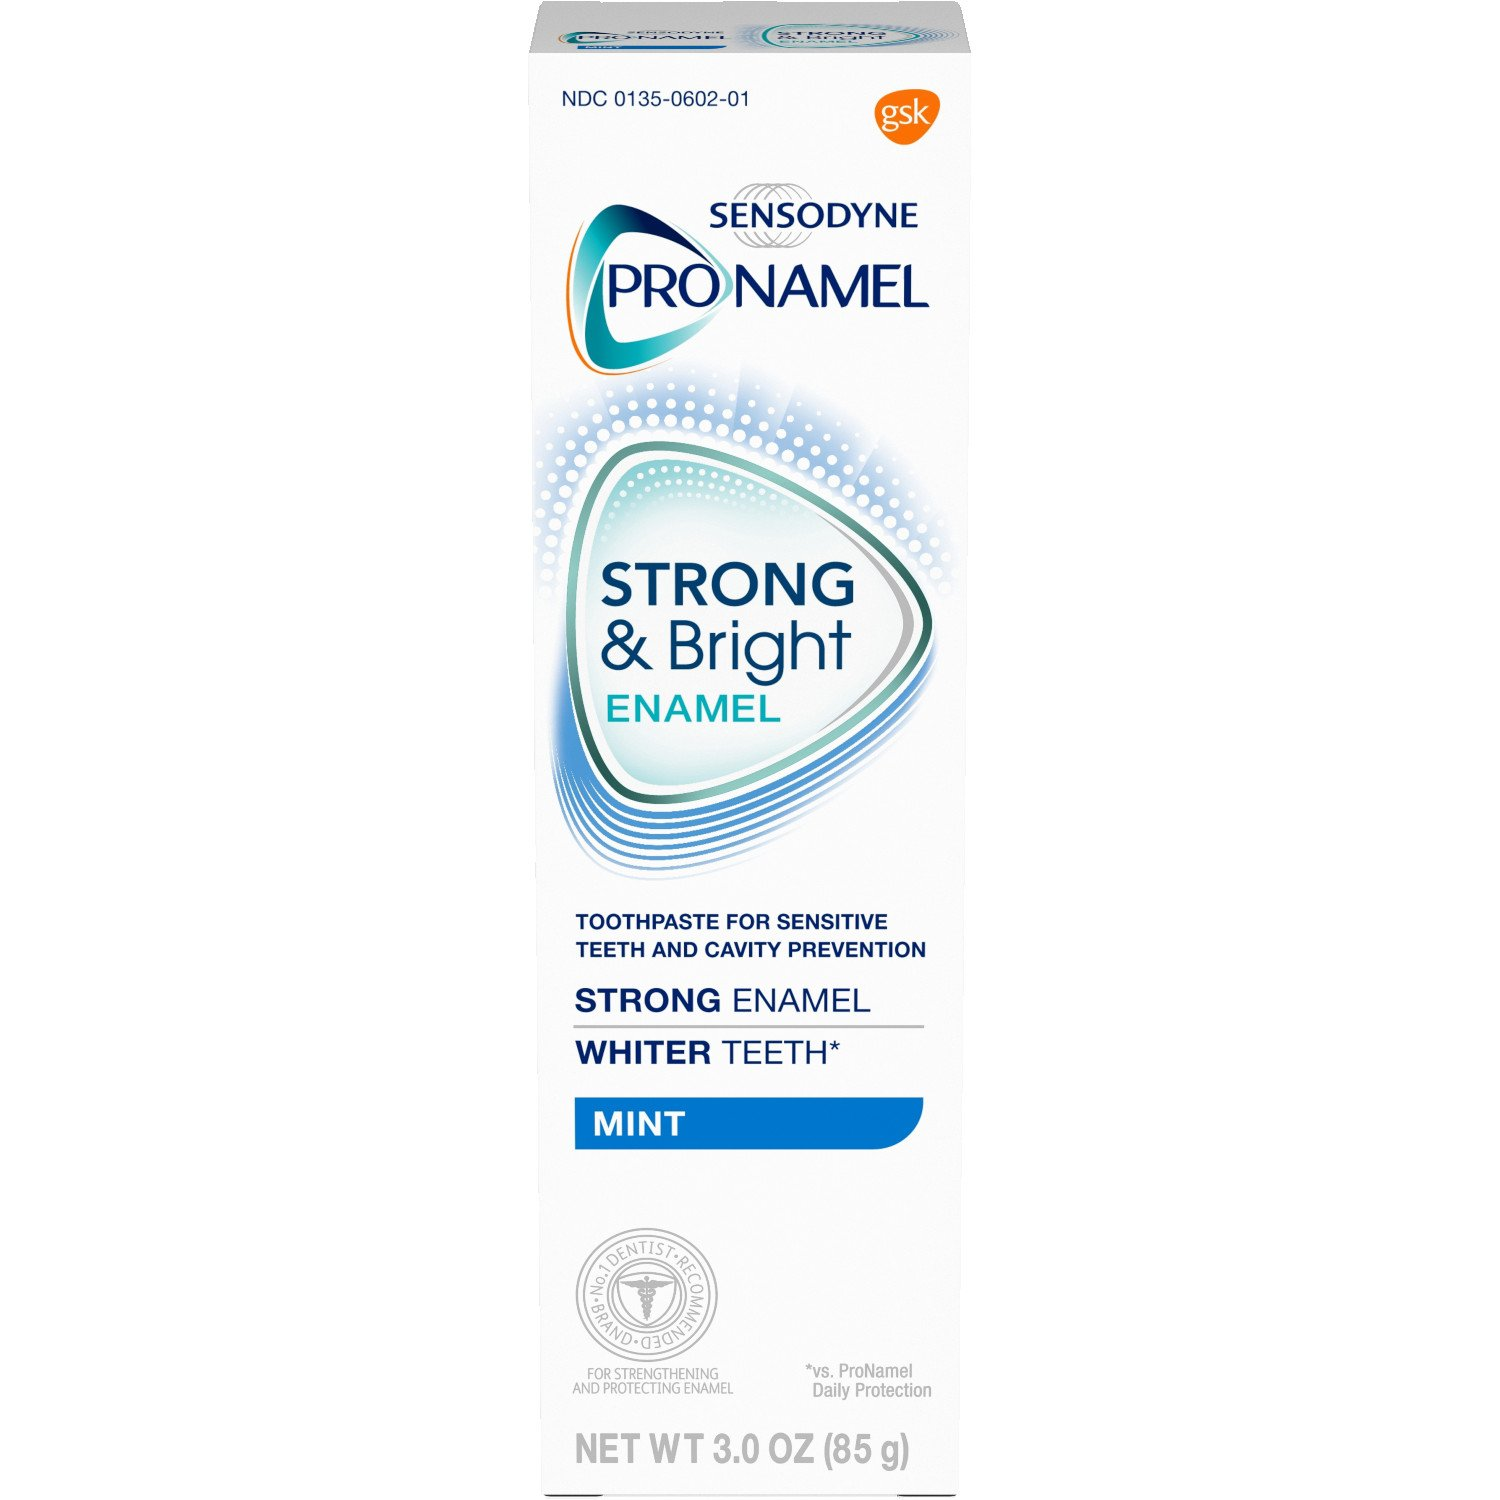 PRONAMEL Sensodyne Pronamel Strong and Bright Enamel Toothpaste for Sensitive Teeth, to Reharden and Strengthen Enamel, Mint - 3 Ounces